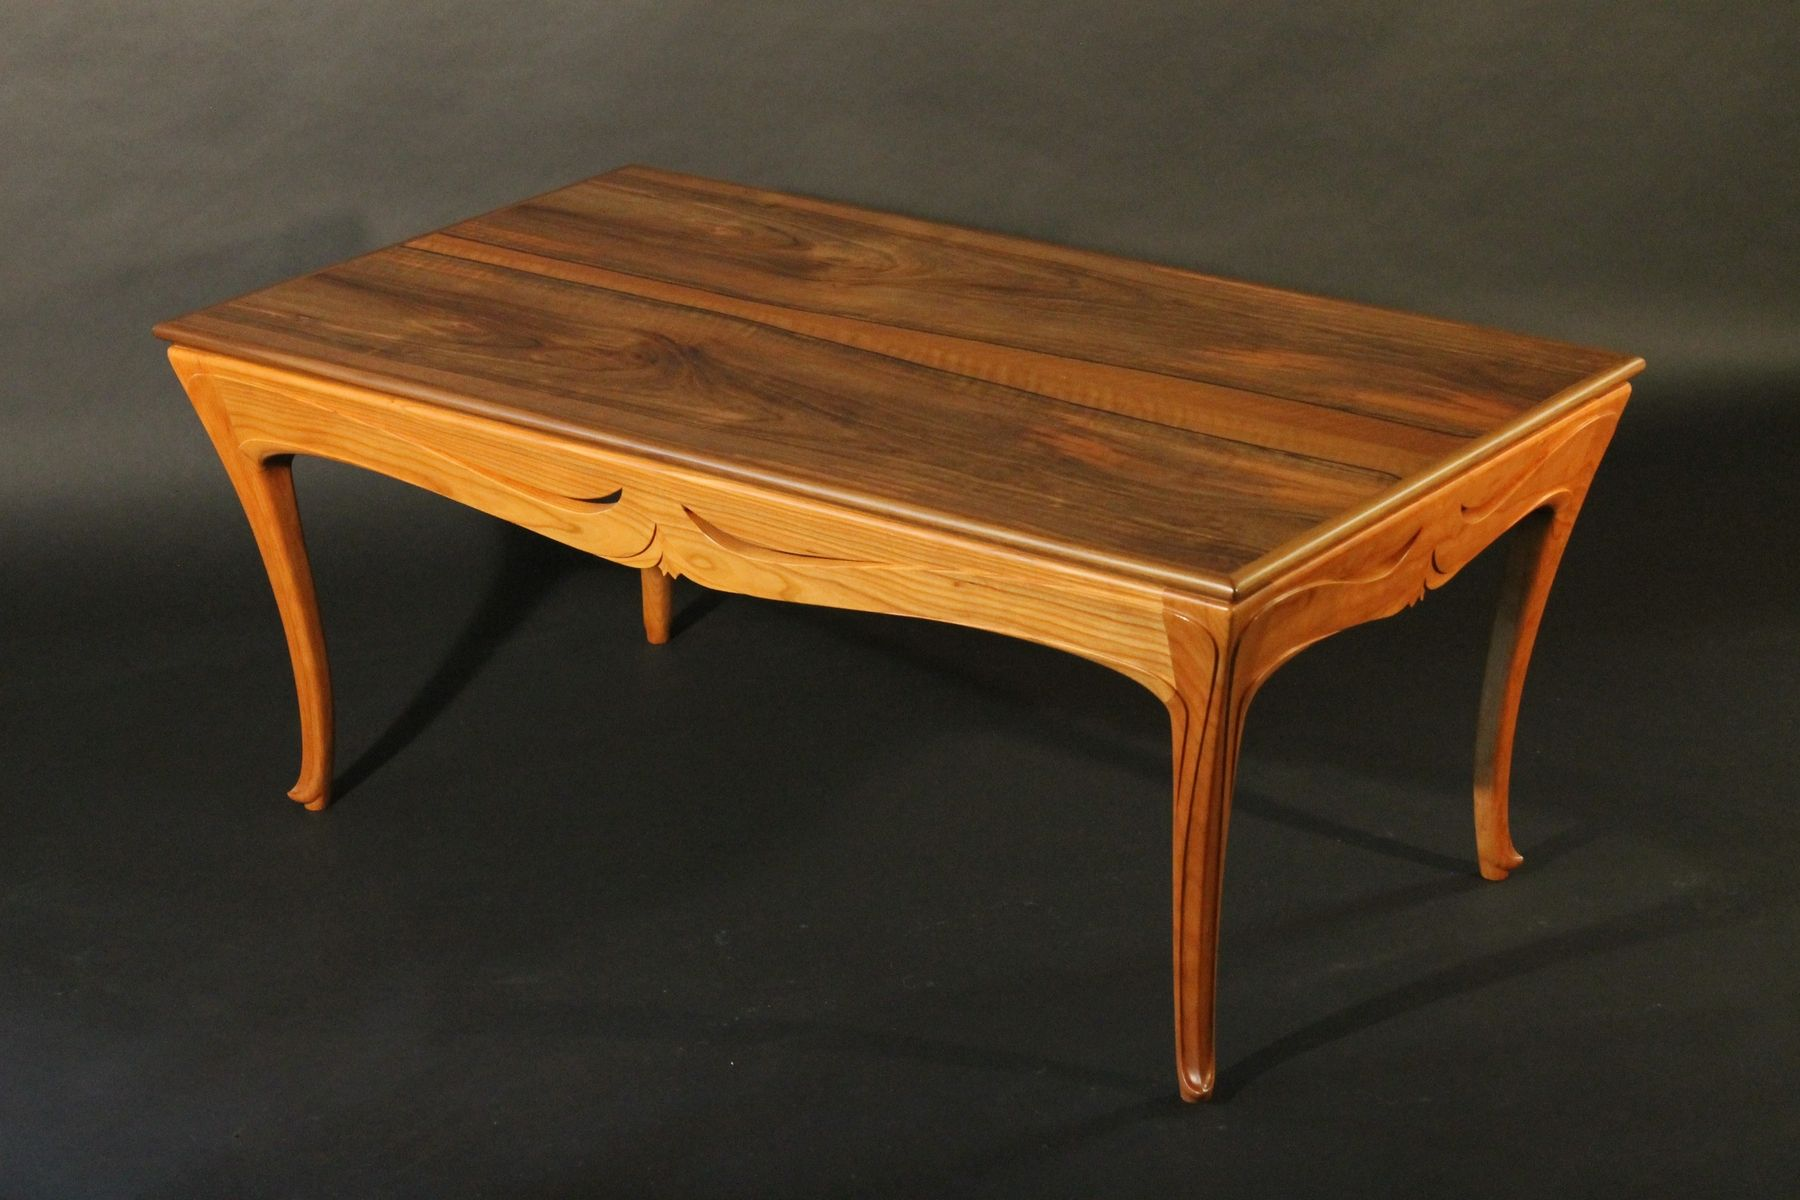 Custom Art Nouveau Coffee Table by J Rivers Furniture & Millwork